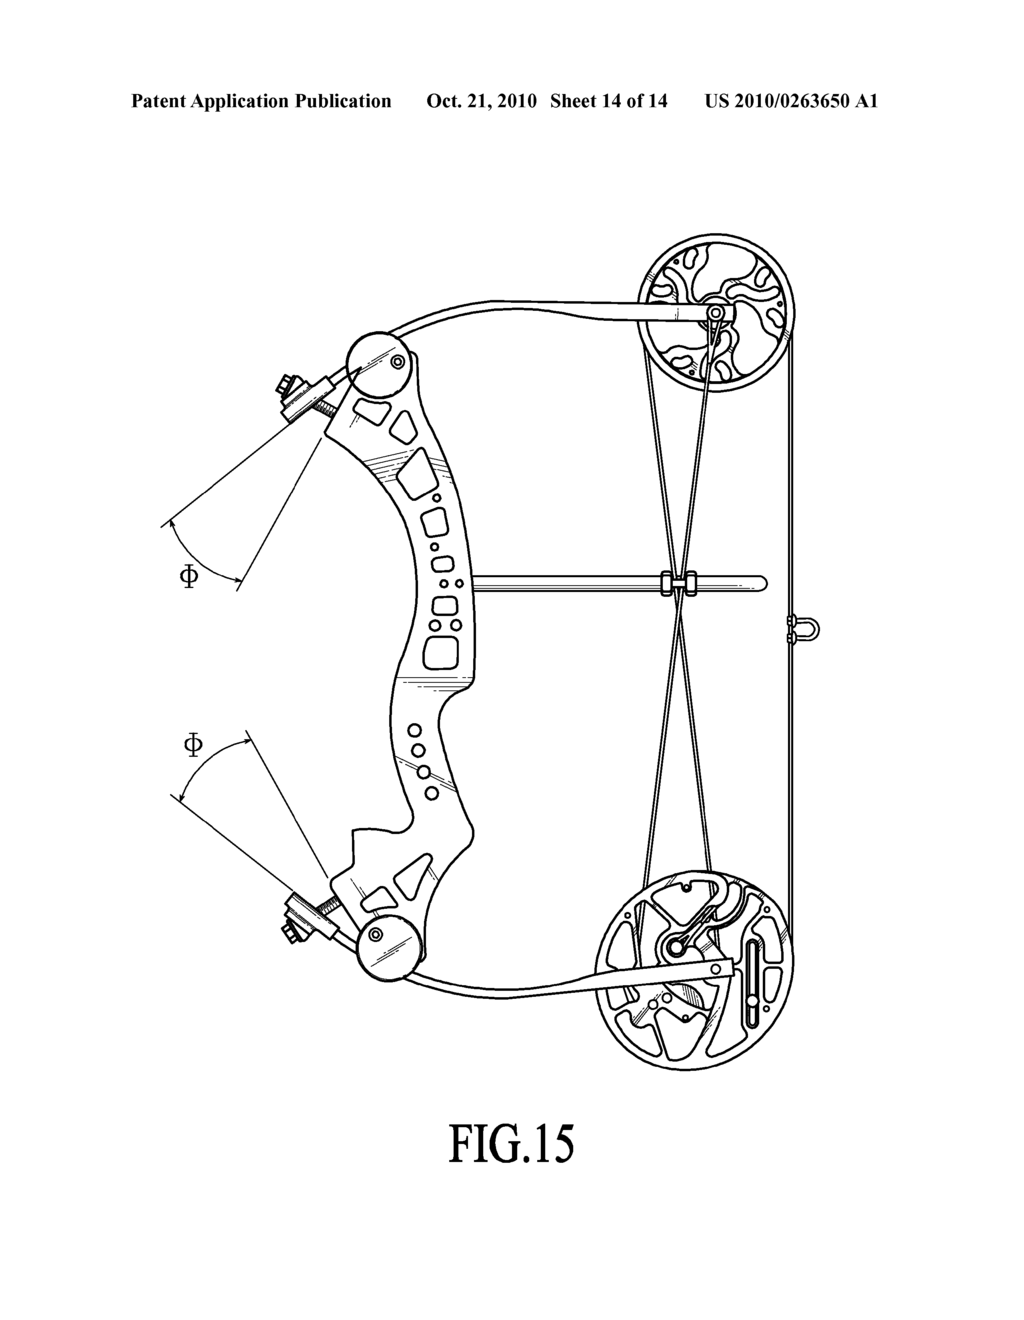 Single-Cam Compound Bow - diagram, schematic, and image 15 on compound bow labels, compound bow cables, compound bow ideas, compound bow books, compound bow power, compound bow models, compound bow operation, compound bow illustrations, compound bow blueprints, compound bow adjustments, compound bow disassembly, compound bow diagrams, compound bow basics, compound bow components, compound bow description, compound bow specs, compound bow sites, compound bow history, compound bow concepts, compound bow layout,